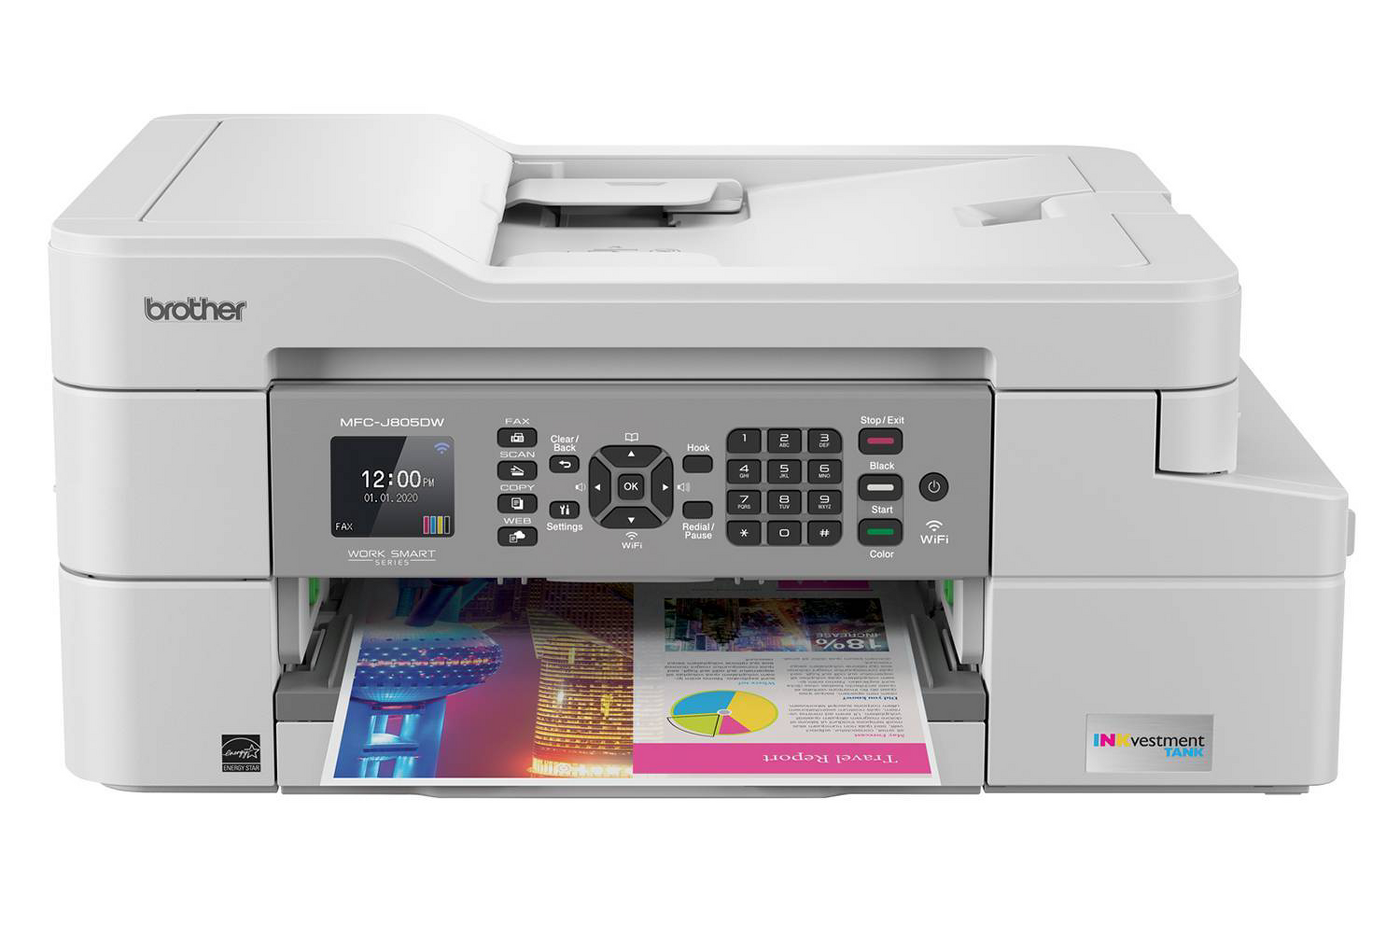 best home printer - Brother INKvestment MFC-J805DW Wireless All-In-One Printer